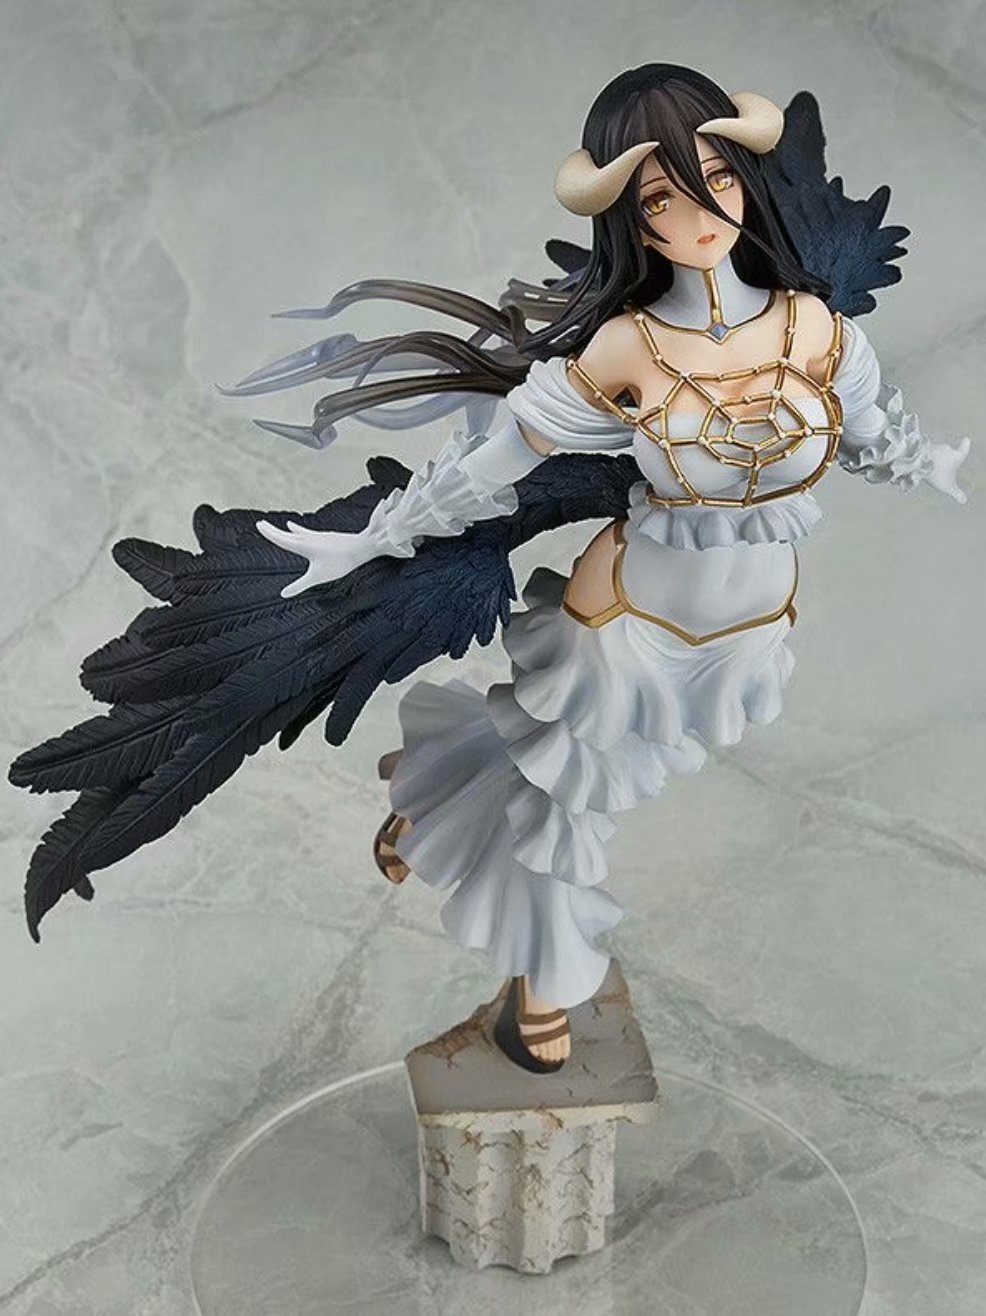 Anime YGGDRASIL Ainz Ooal Gown Albedo Figure Sexy Removable Adult Doll Toy 29cm PVC Action Figure